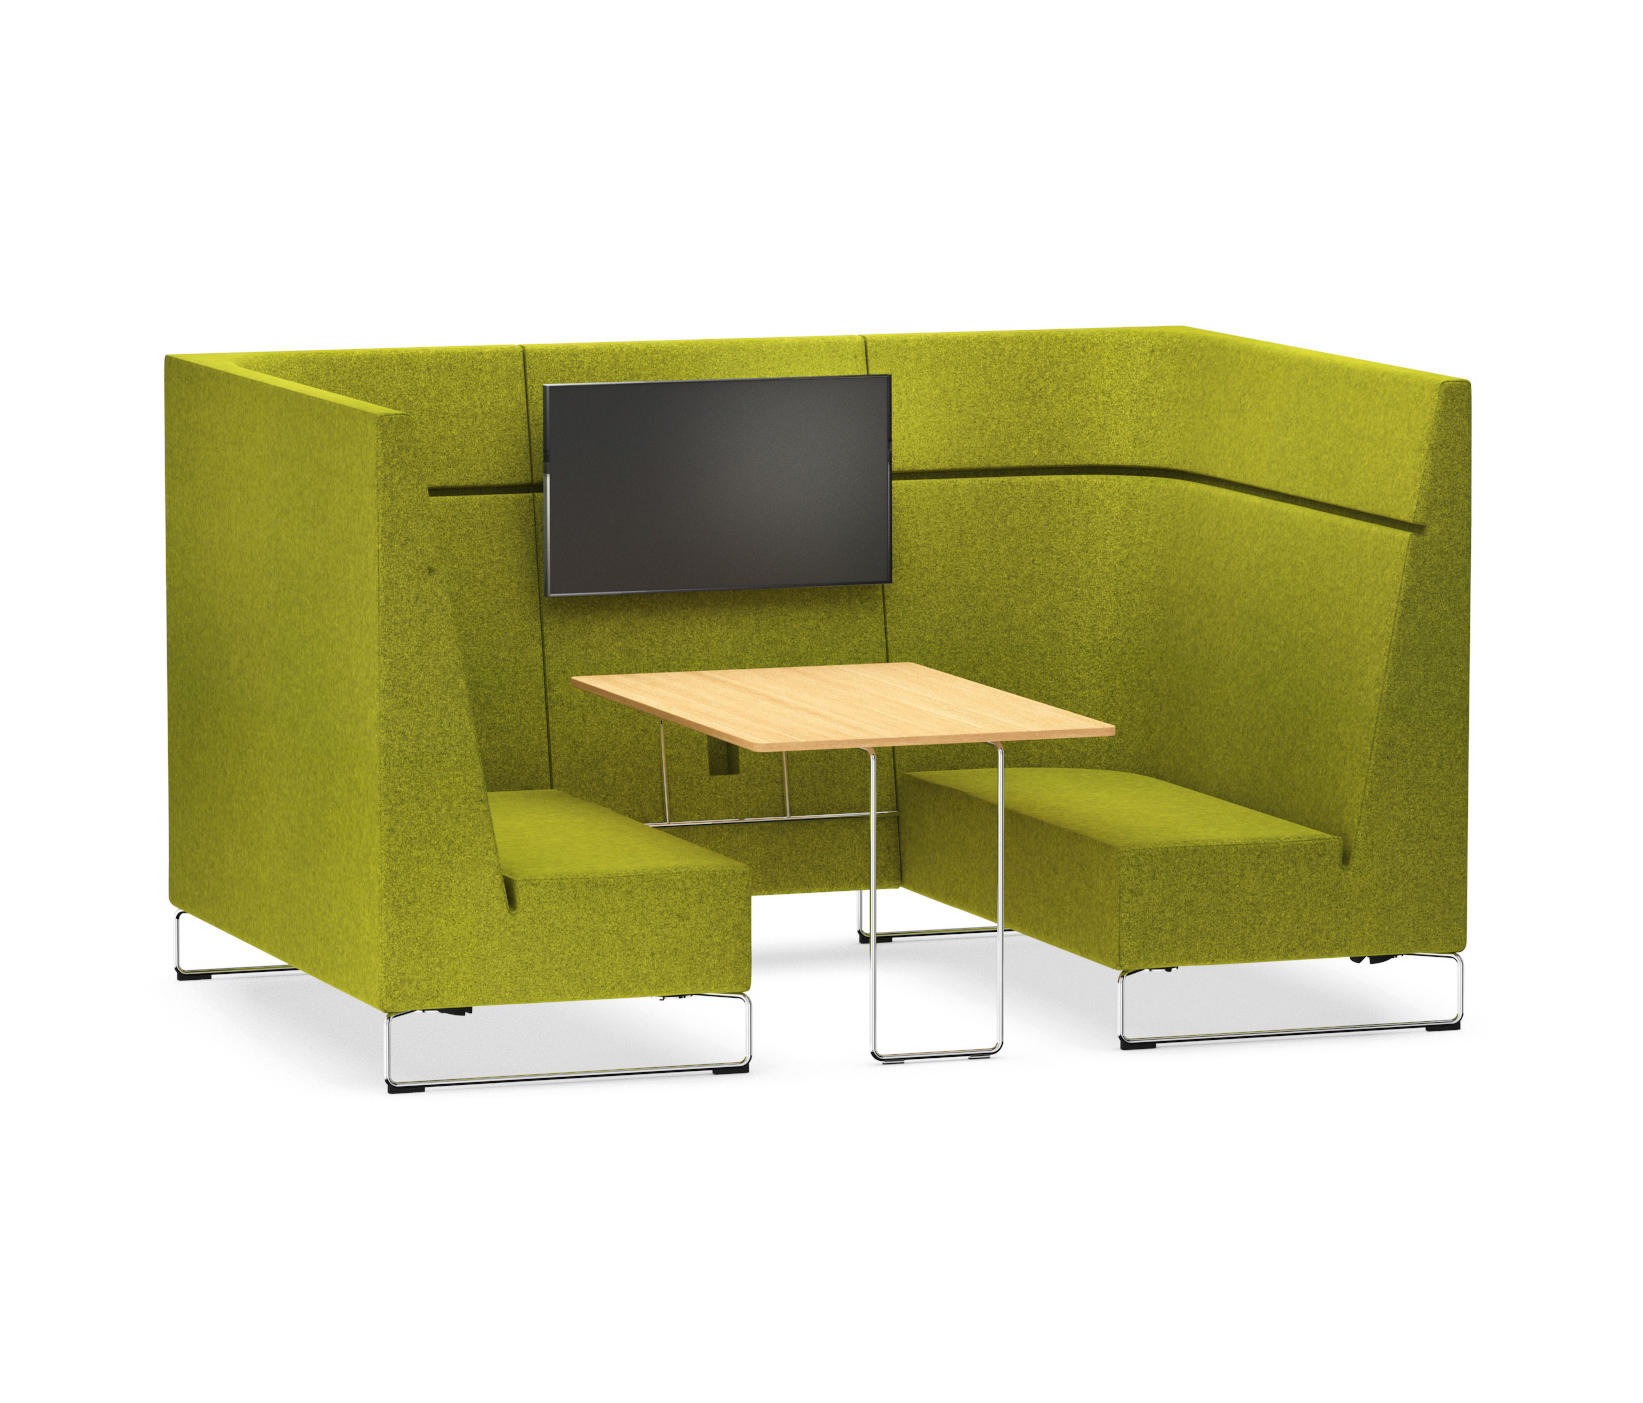 Yellow Möbel Sessel Lounge Hiback Sofas From Vs Architonic